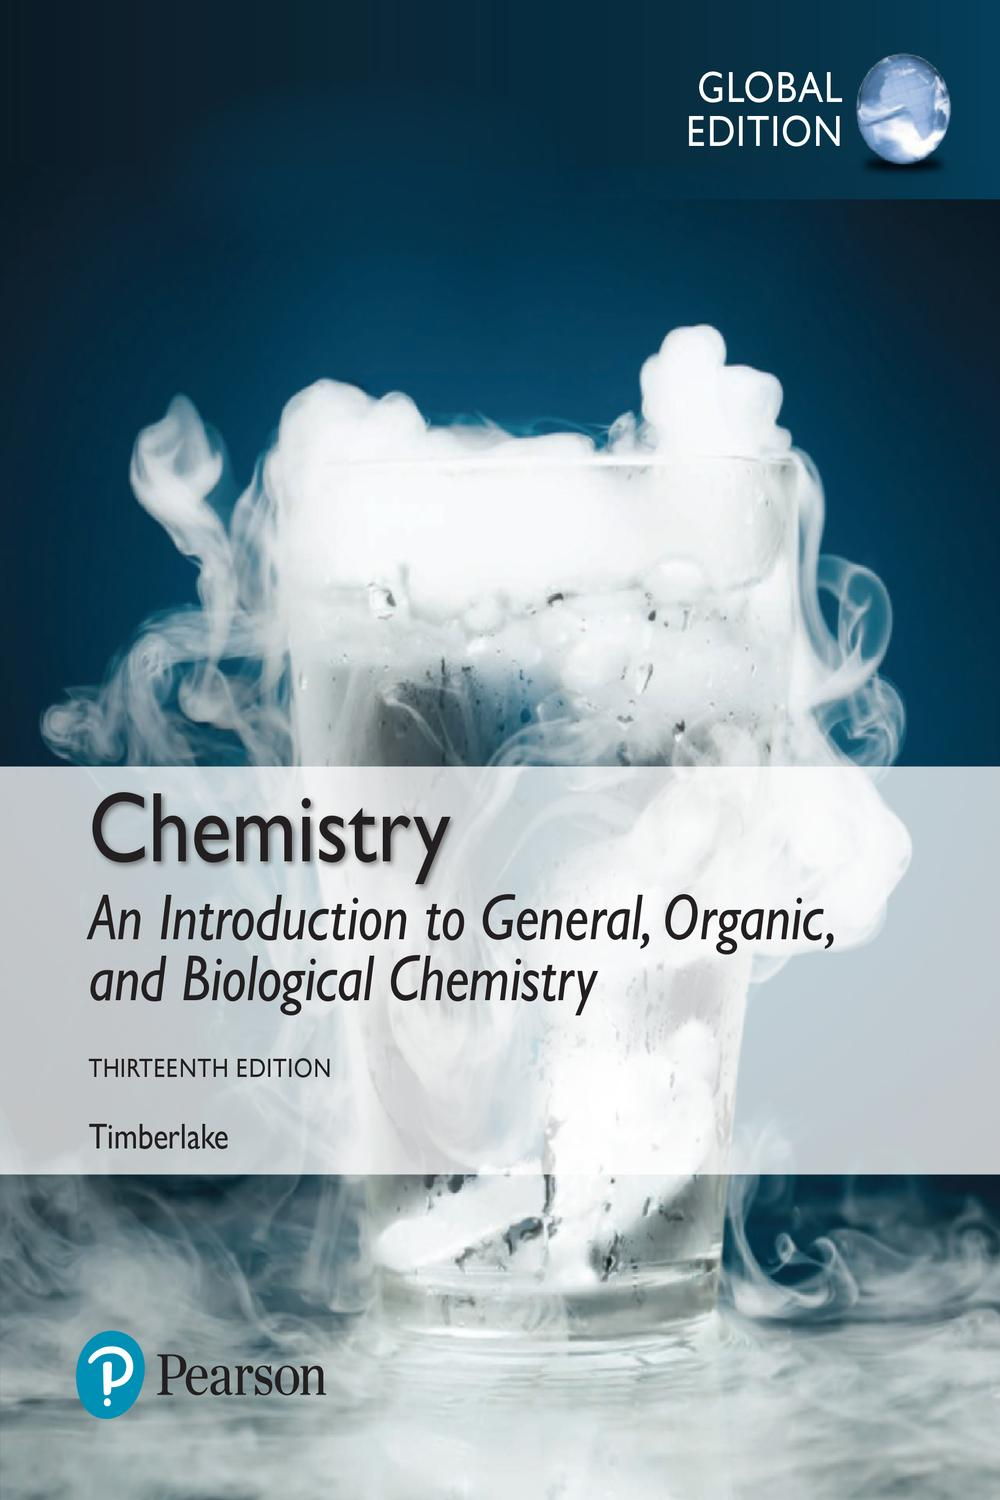 Chemistry: An Introduction to General, Organic, and Biological